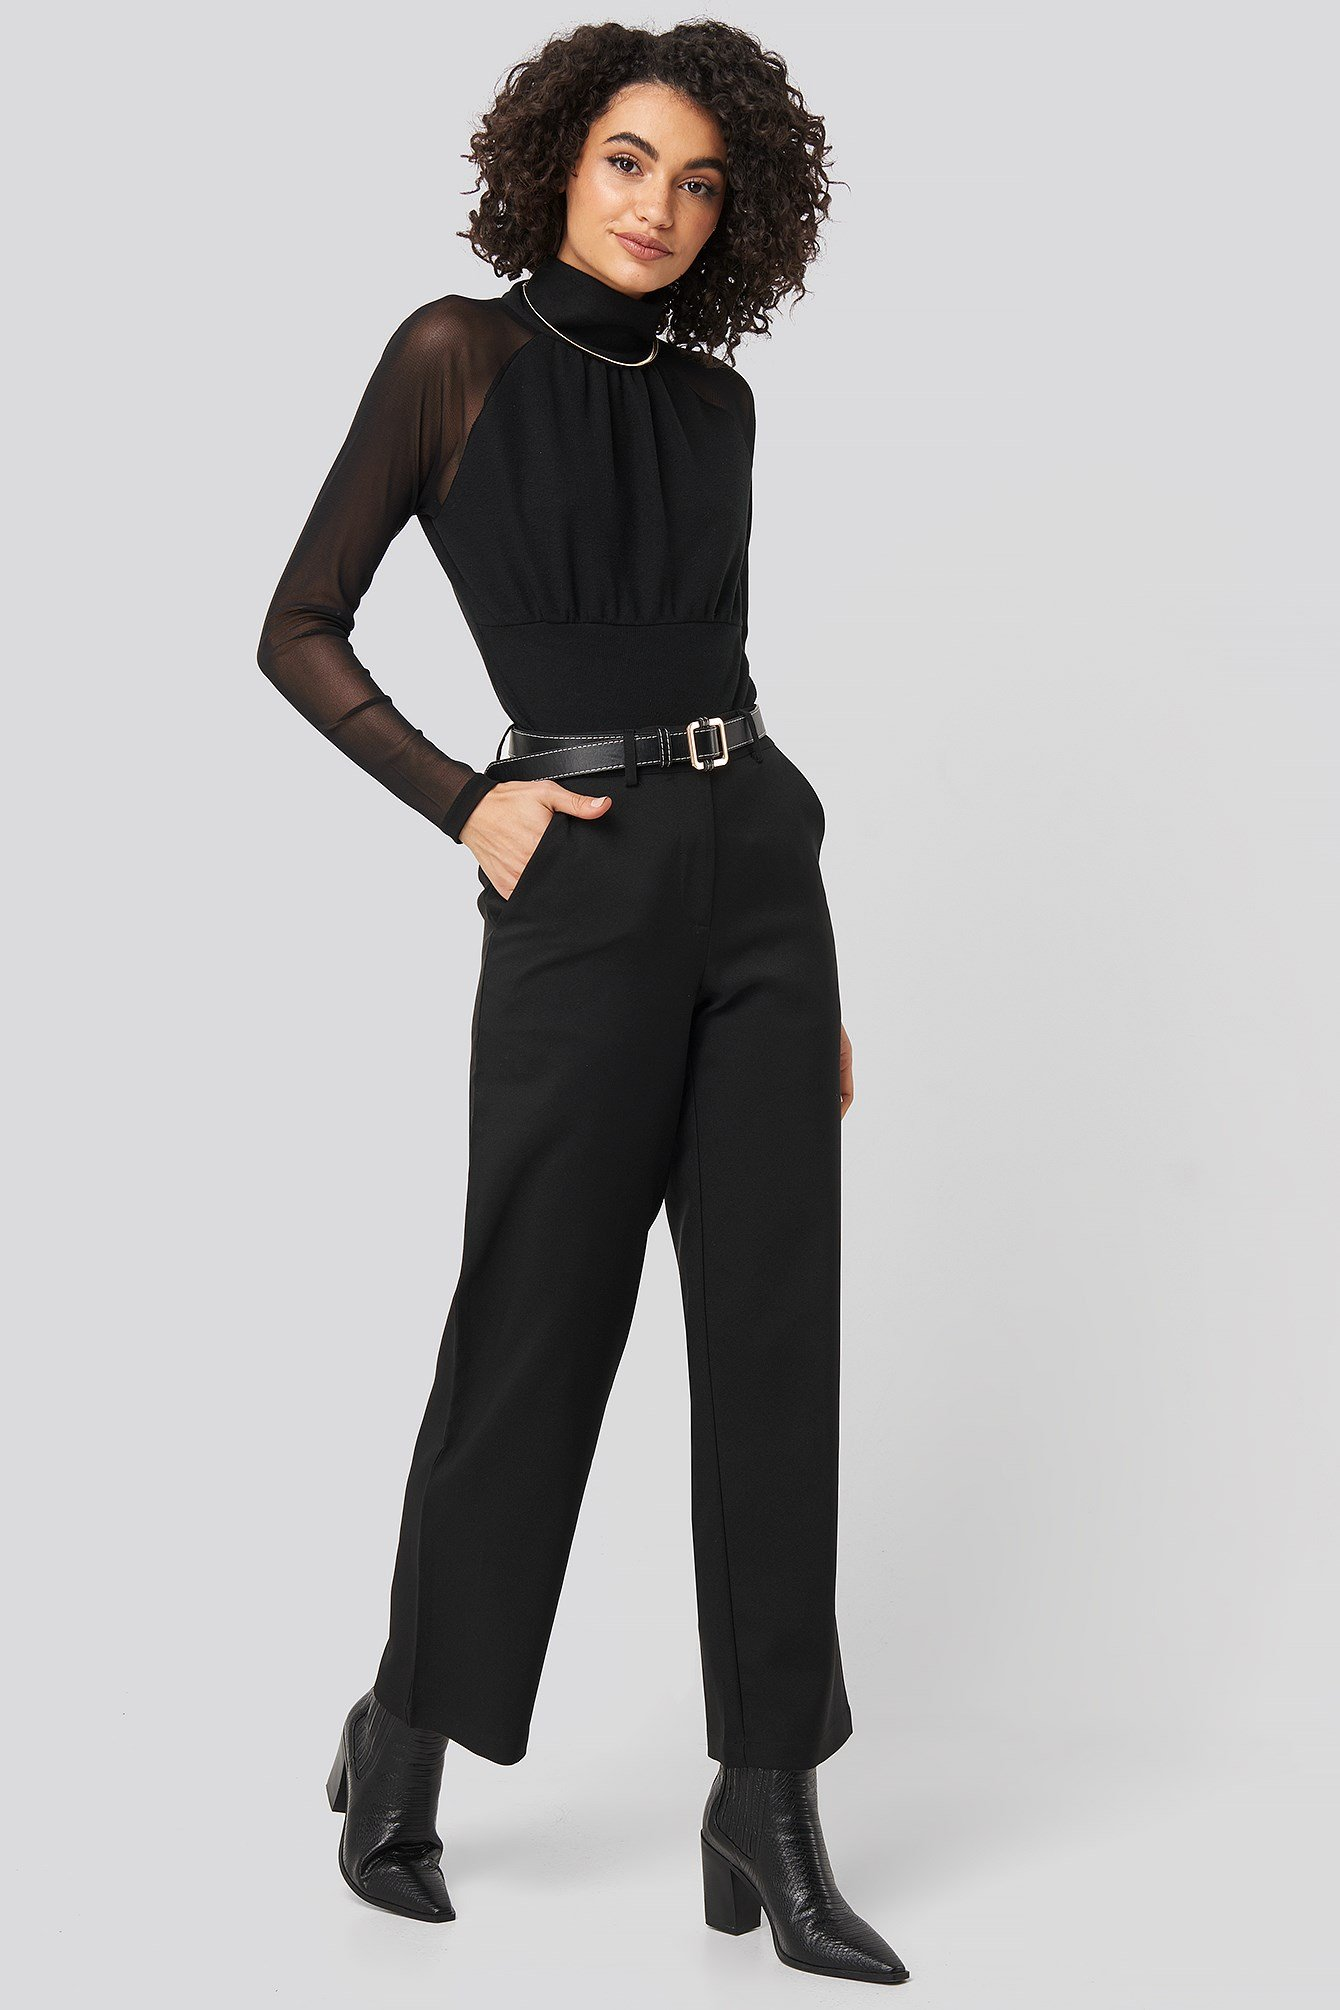 Straight Leg Wide Pants Black Outfit